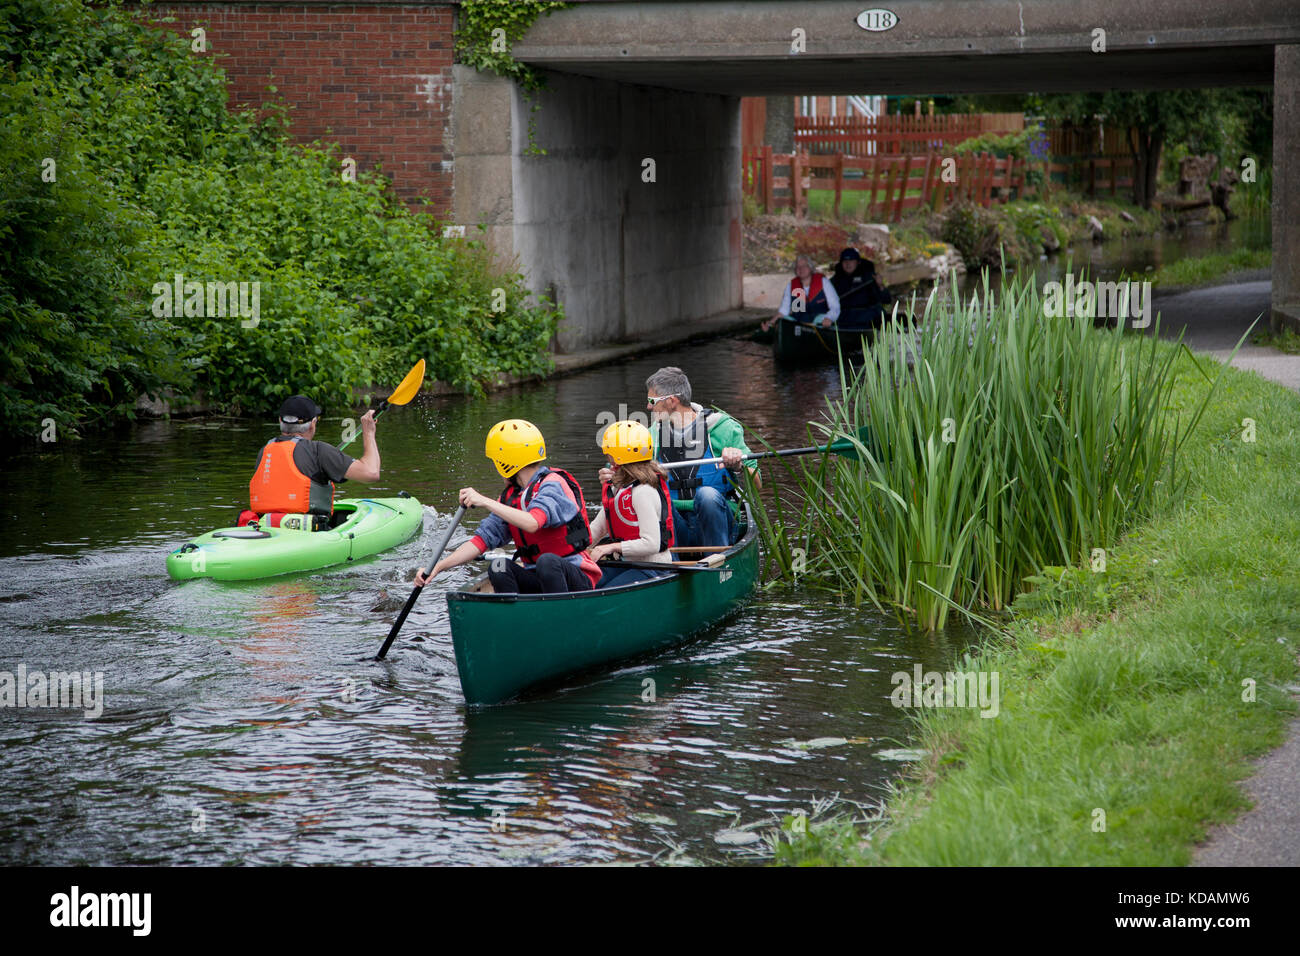 Boating on a UK canal, Welsh borders - Stock Image